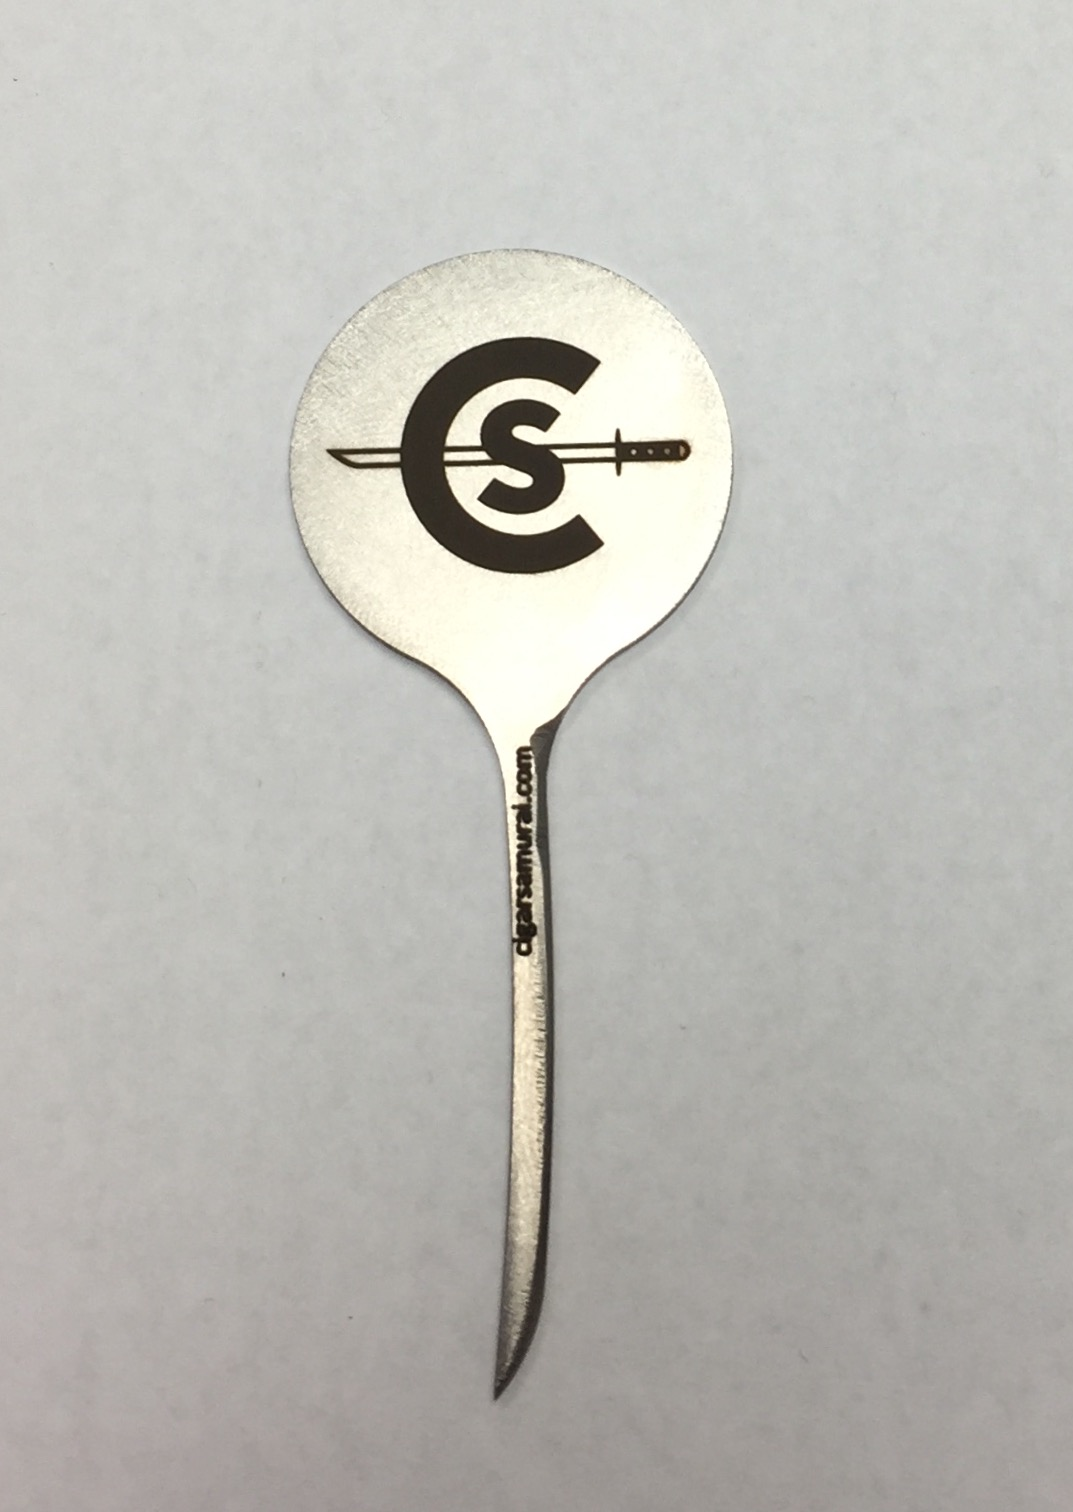 The Cigar Samurai Flat pick has room for a logo and writing on both sides of the coin area.